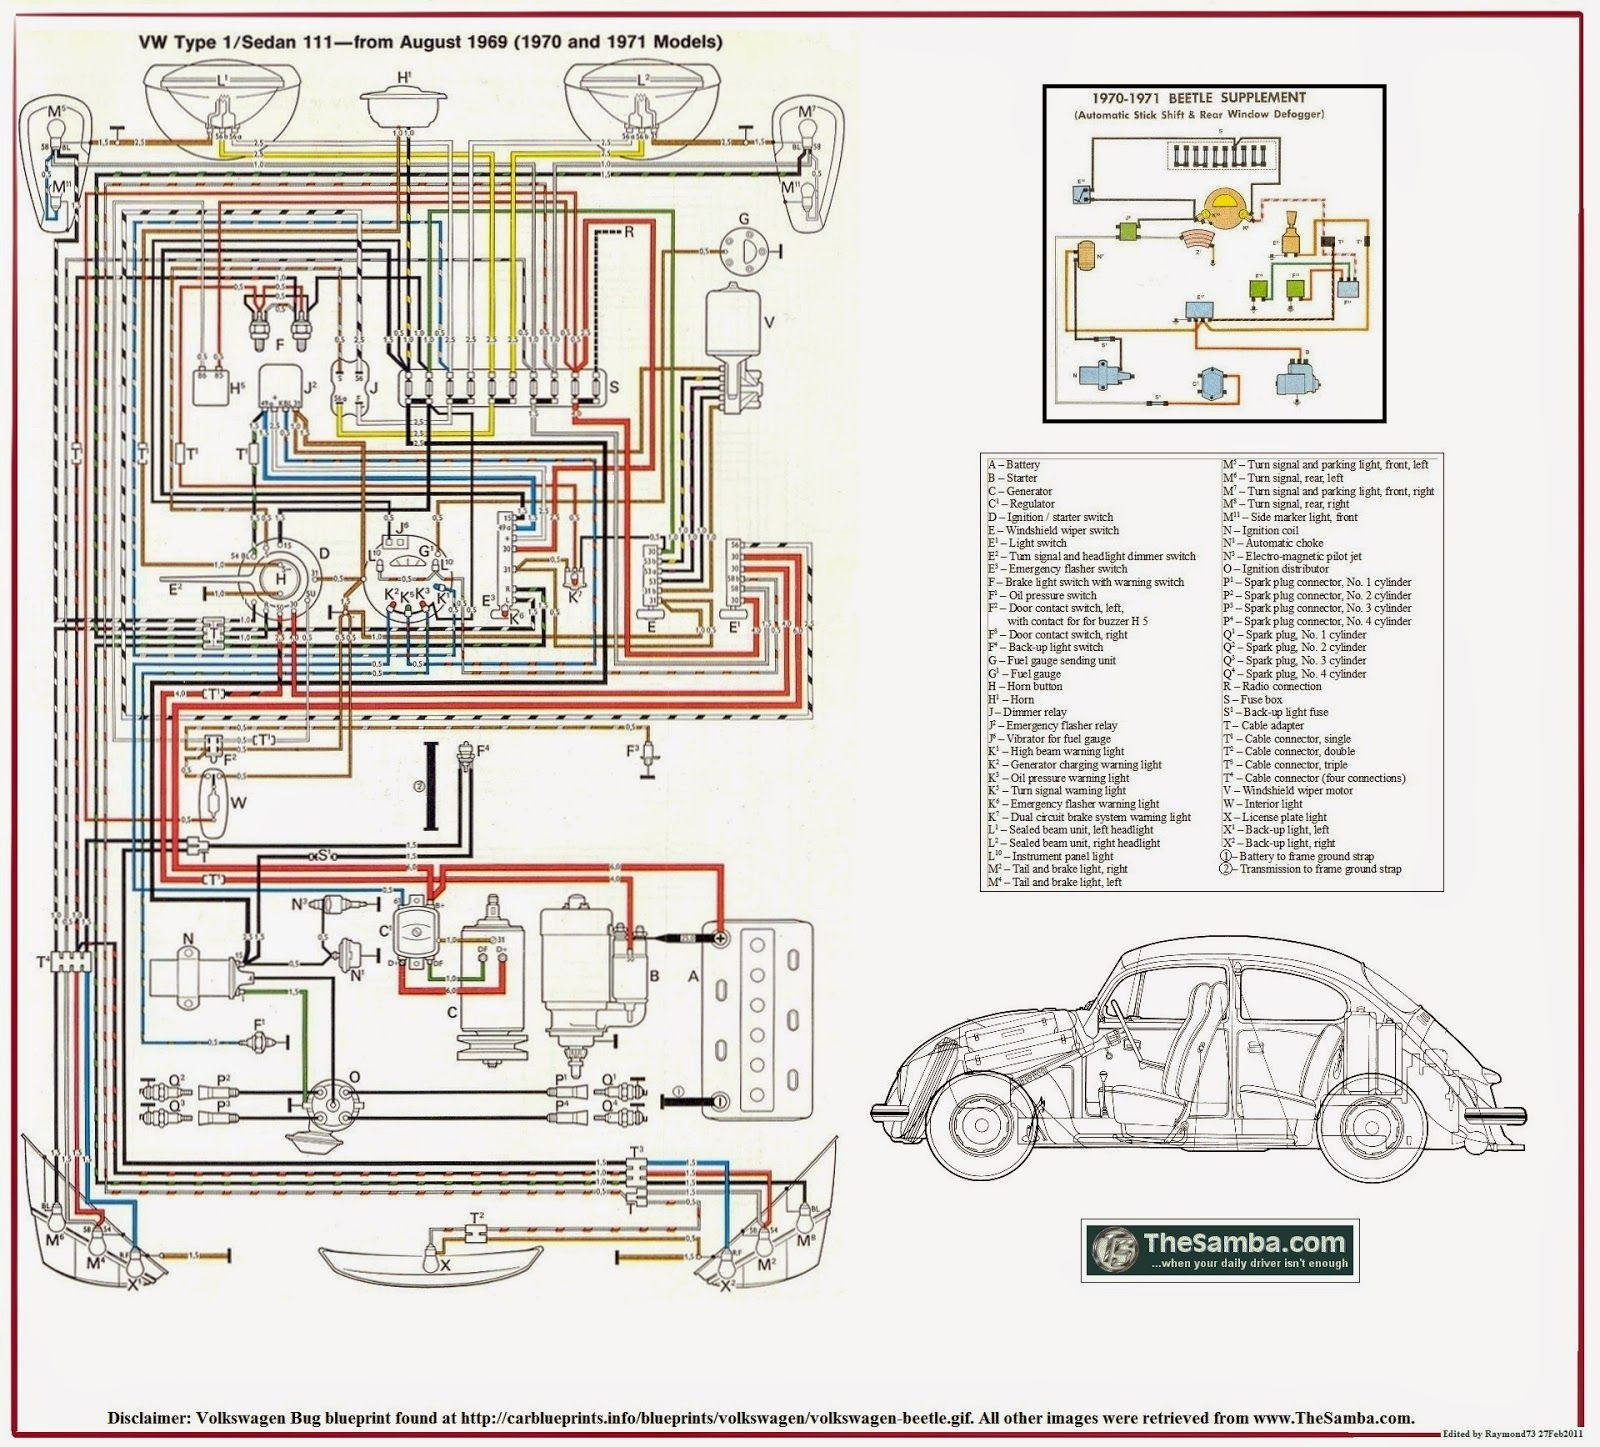 vw trike wiring diagrams fg 6353  vw trike wiring plans  fg 6353  vw trike wiring plans